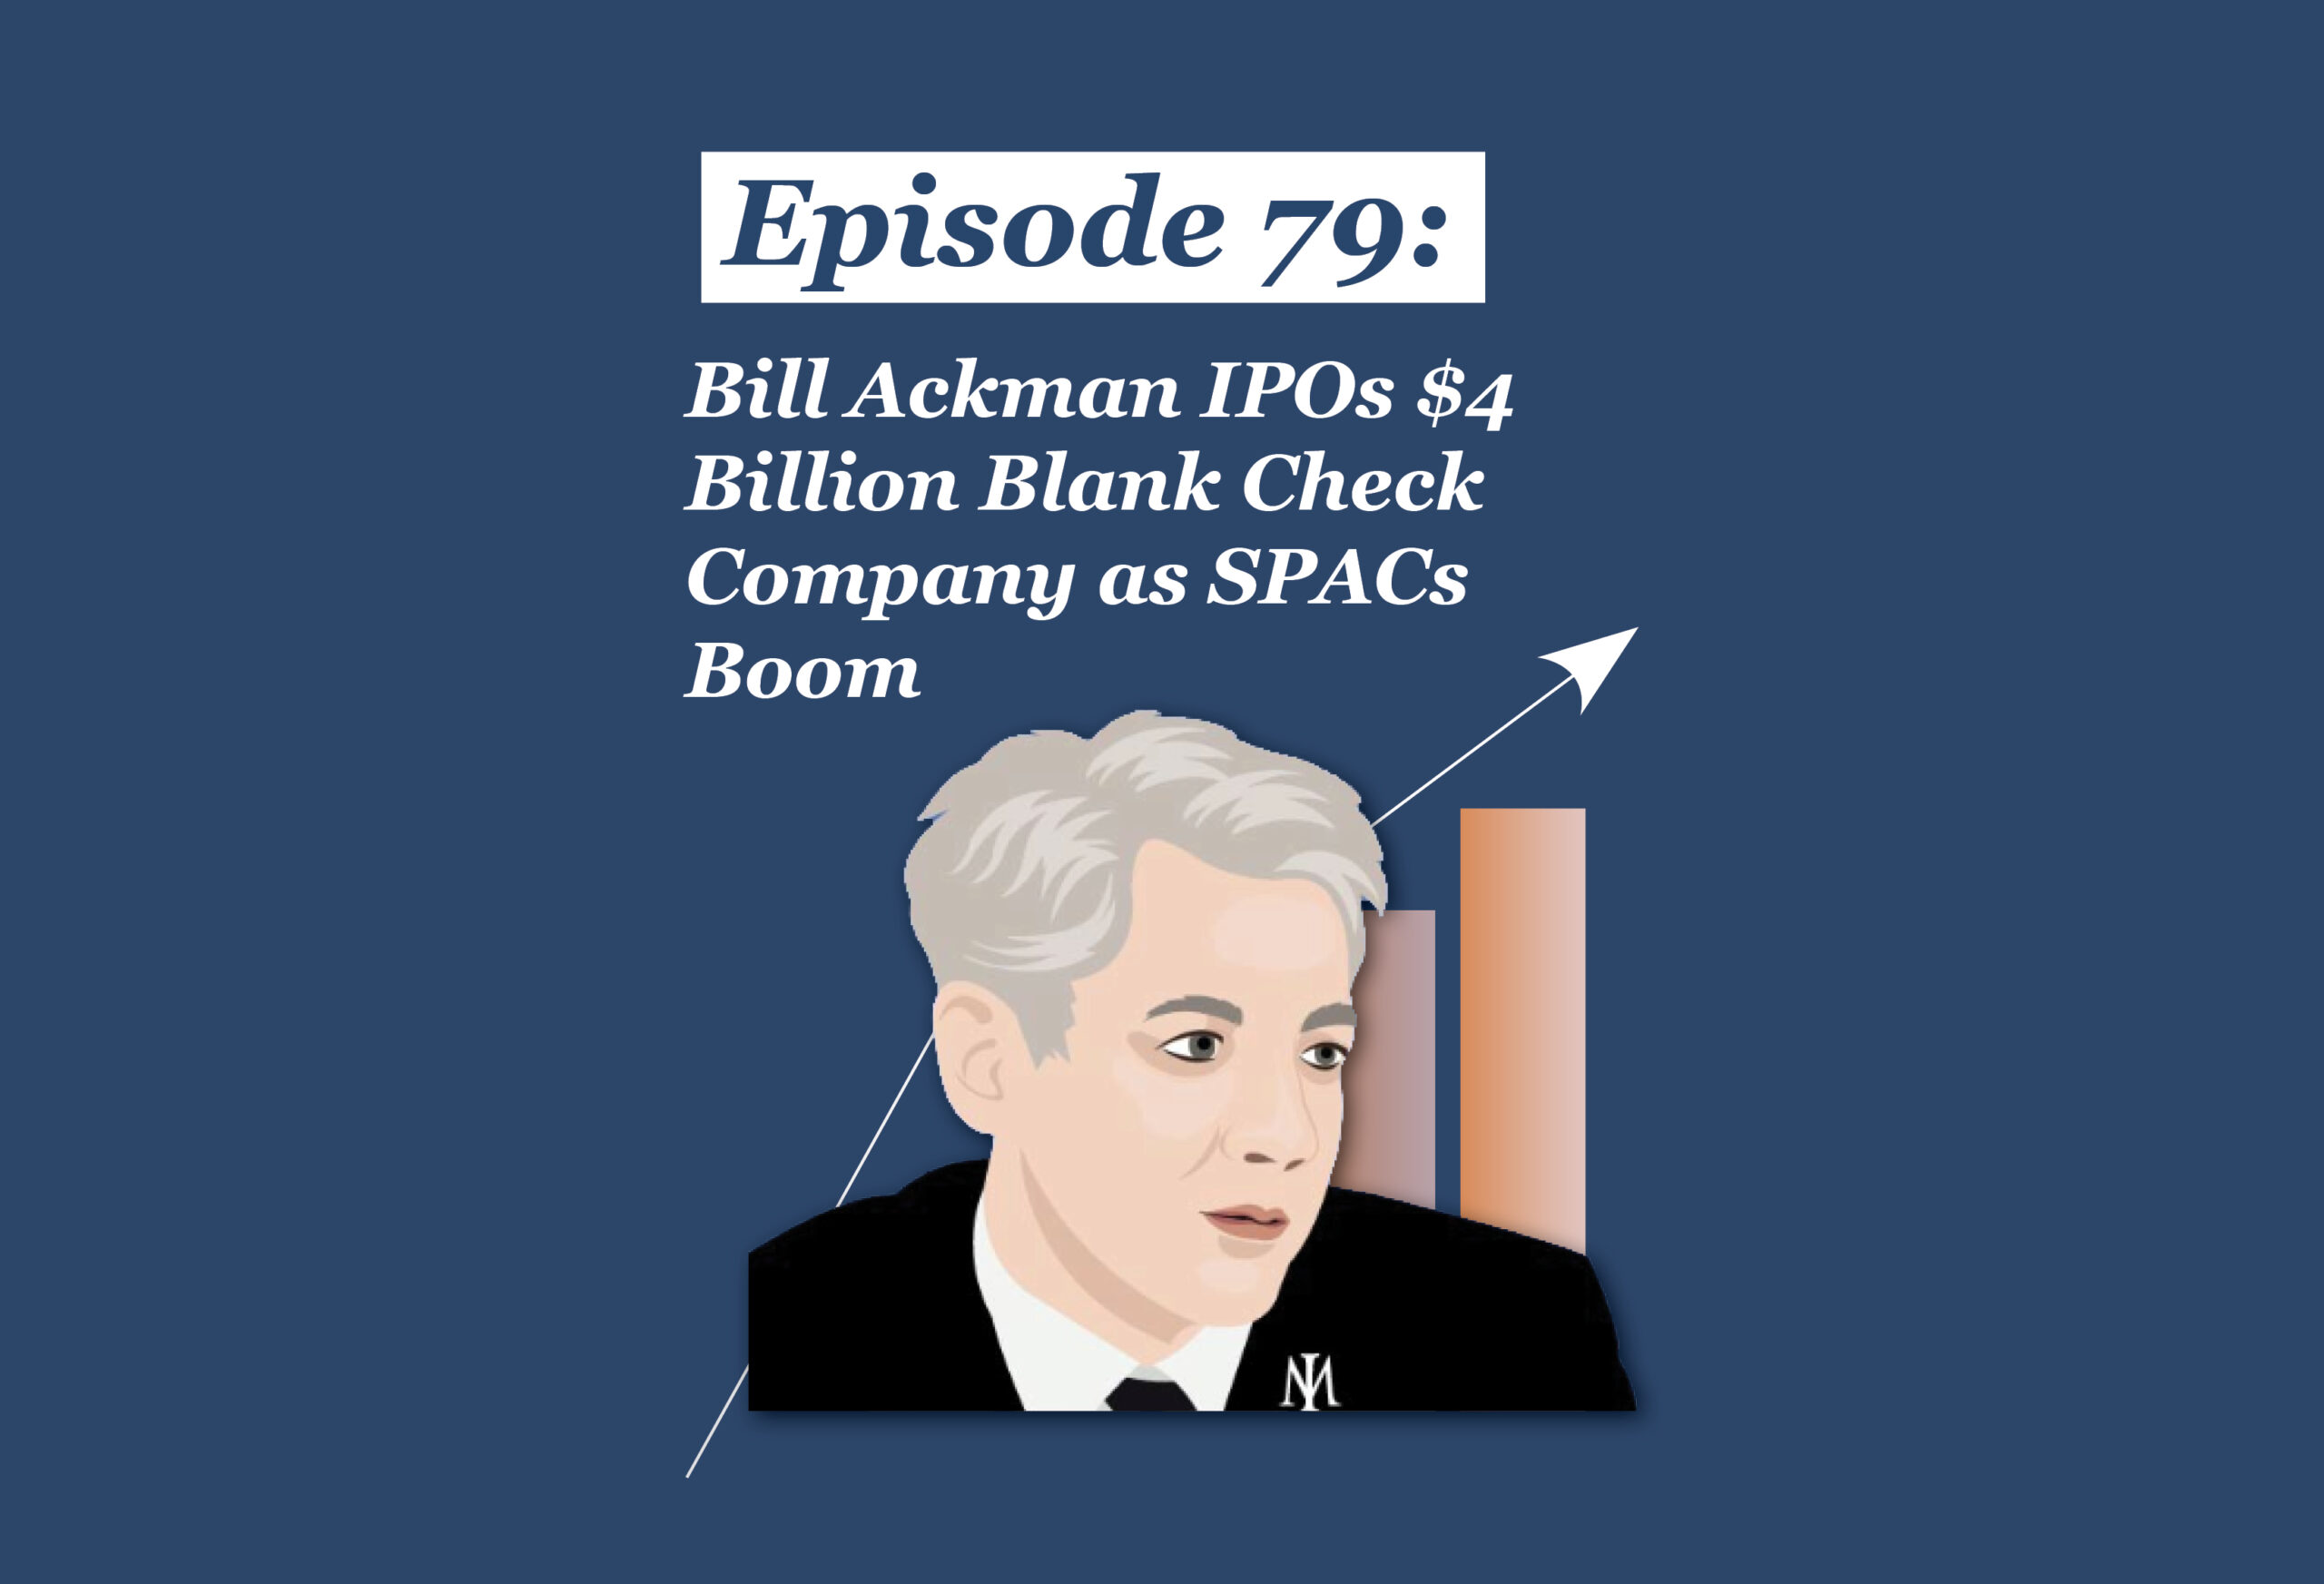 Absolute Return Podcast #79: Bill Ackman IPOs $4 Billion Blank Check Company as SPACs Boom